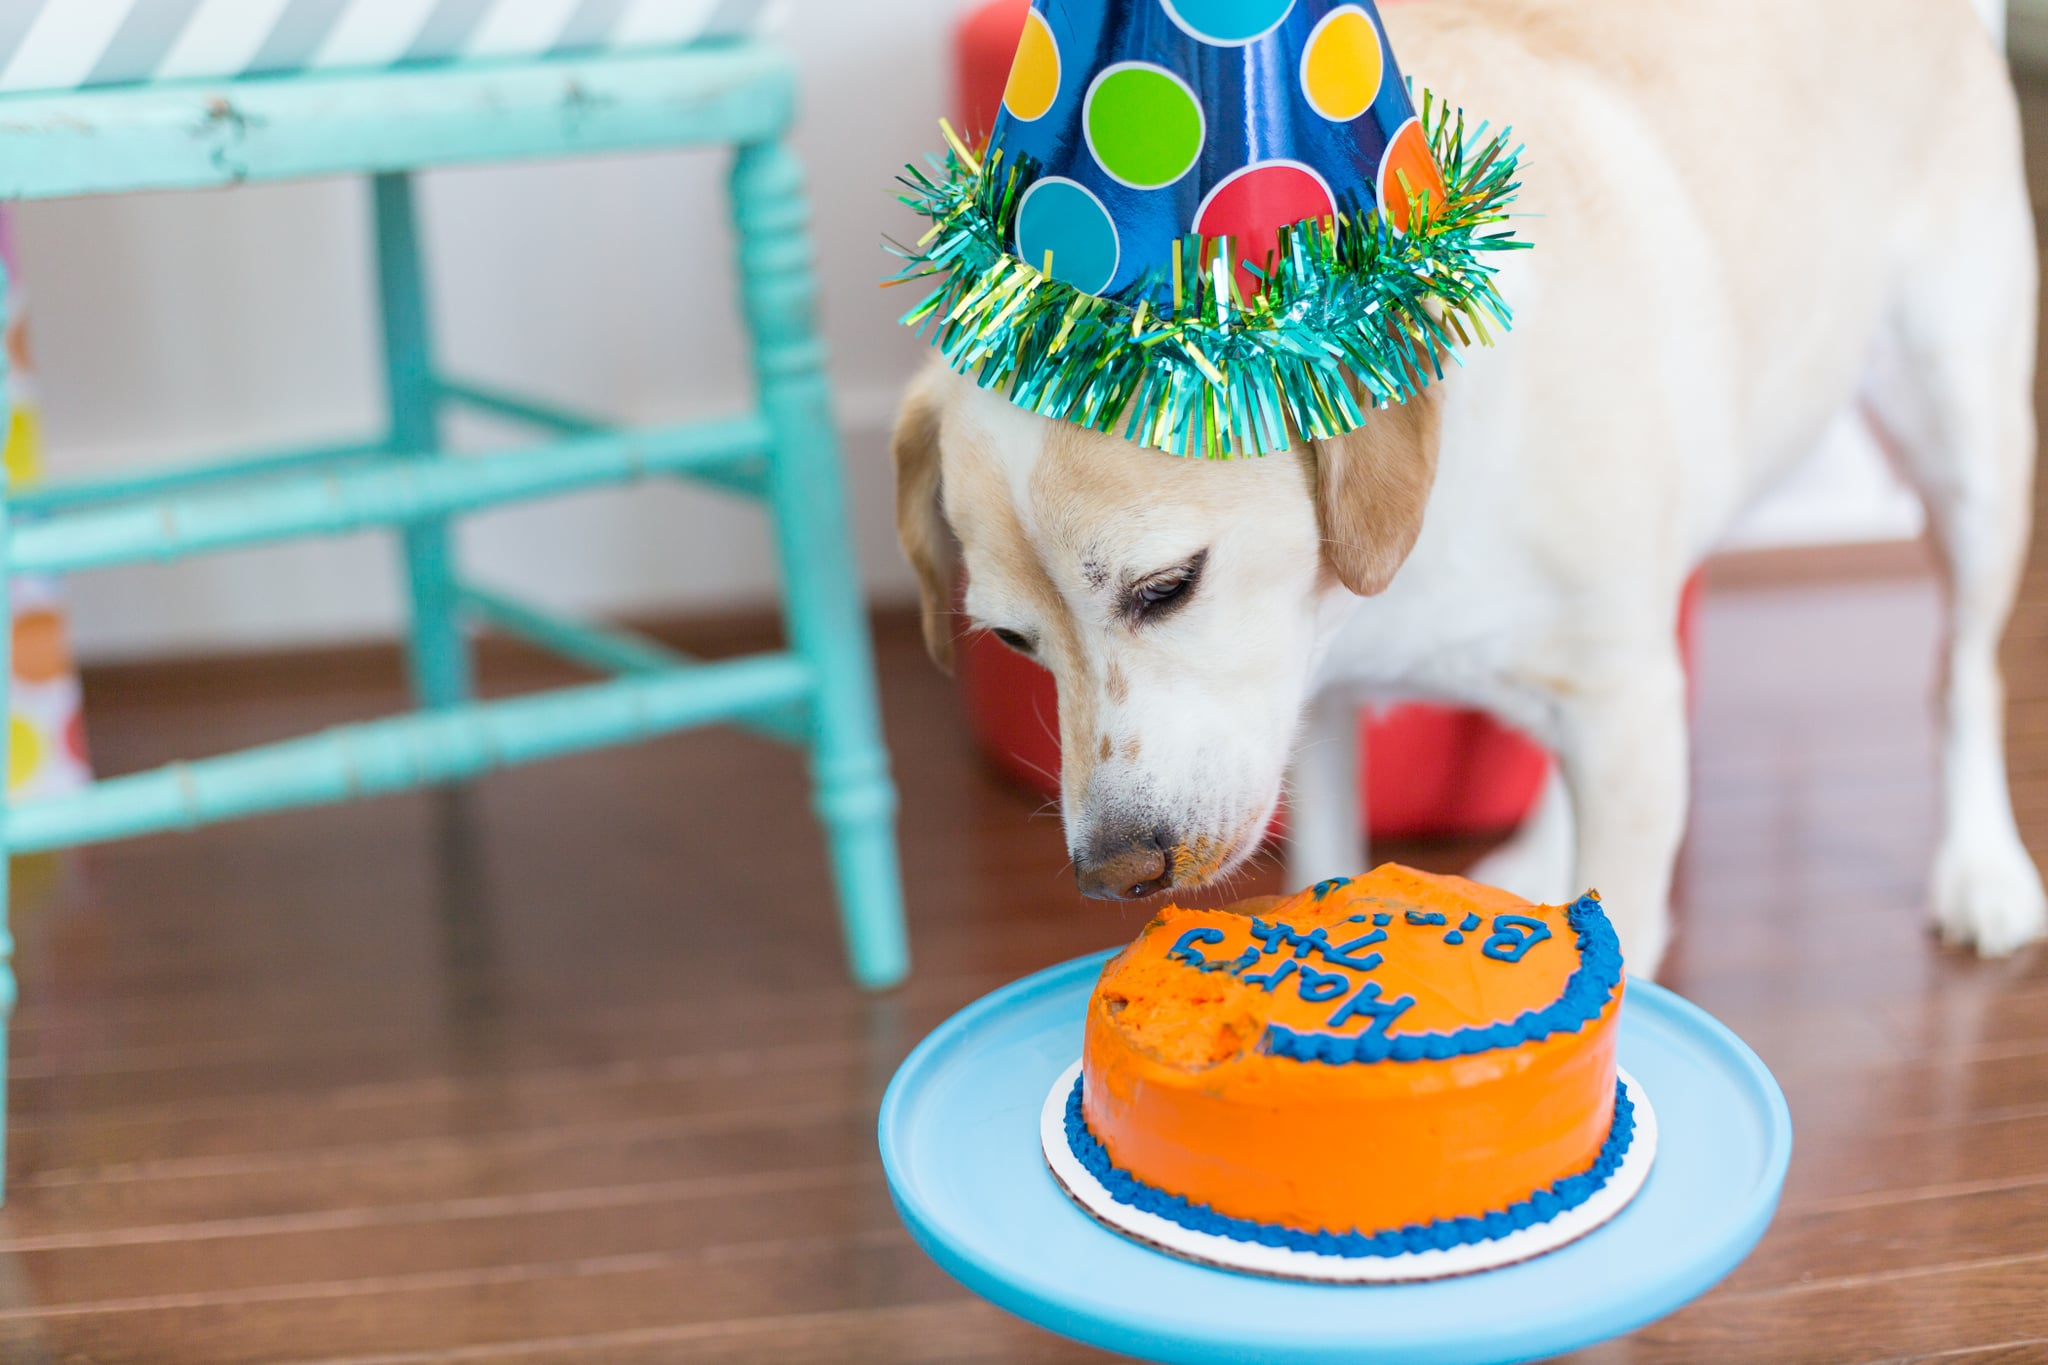 How to Throw a Birthday Party For Your Dog | POPSUGAR Pets